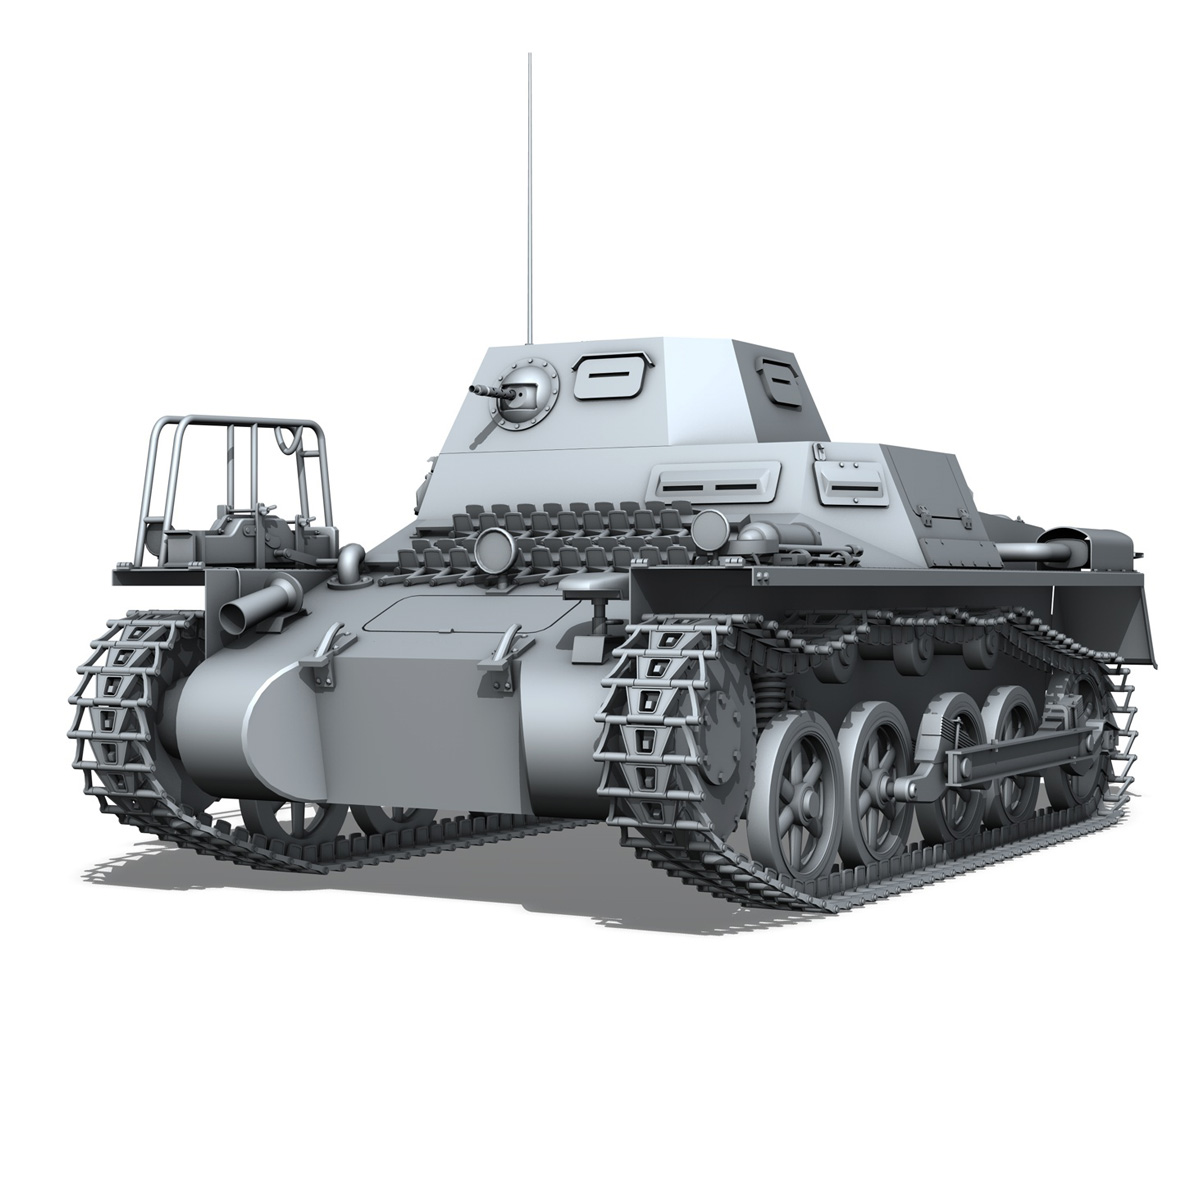 panzerkampfwagen 1 – panzer 1 collection 3d model 3ds fbx c4d lwo obj 189340